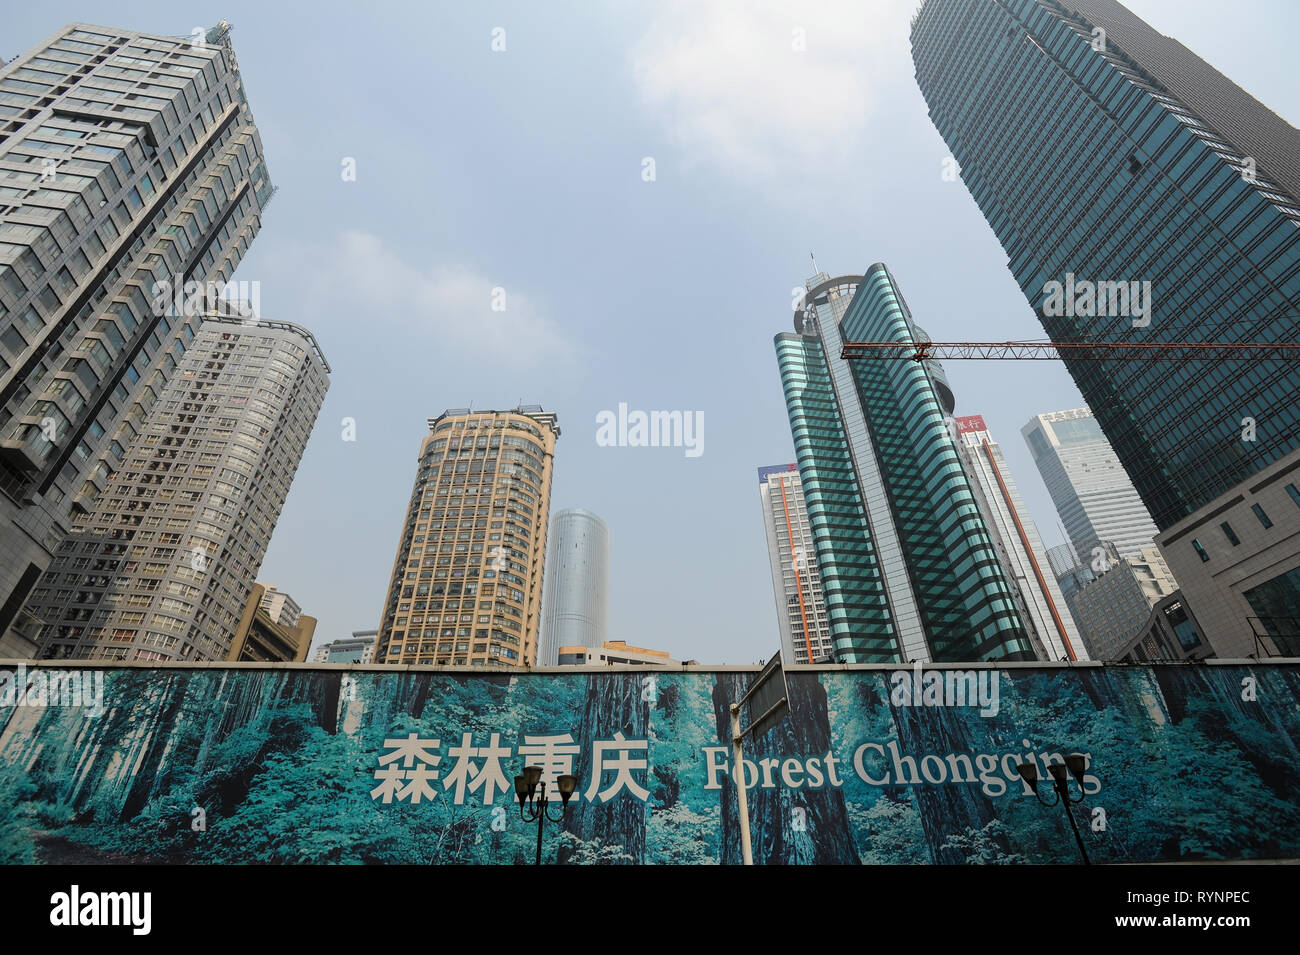 03.08.2012, Chongqing, China, Asia - A view of a construction site with modern high-rise buildings in the city centre of the megacity. Stock Photo